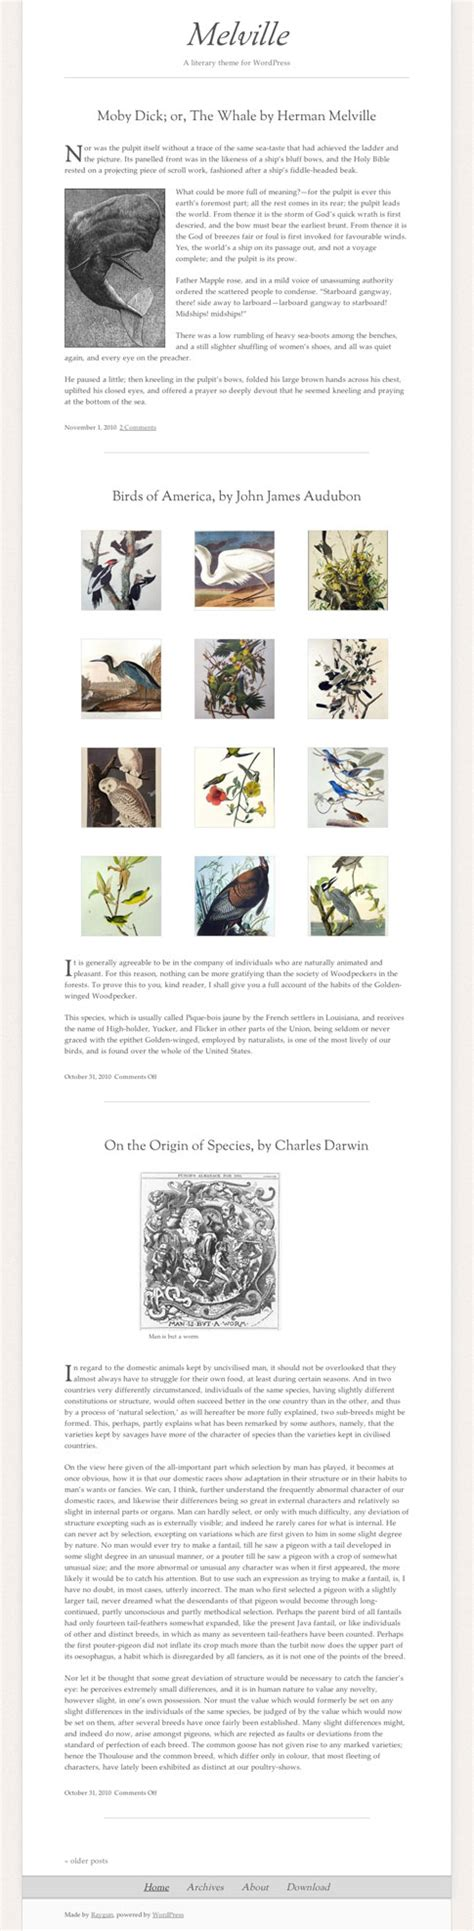 themes in classic literature melville free wordpress theme draws inspiration from